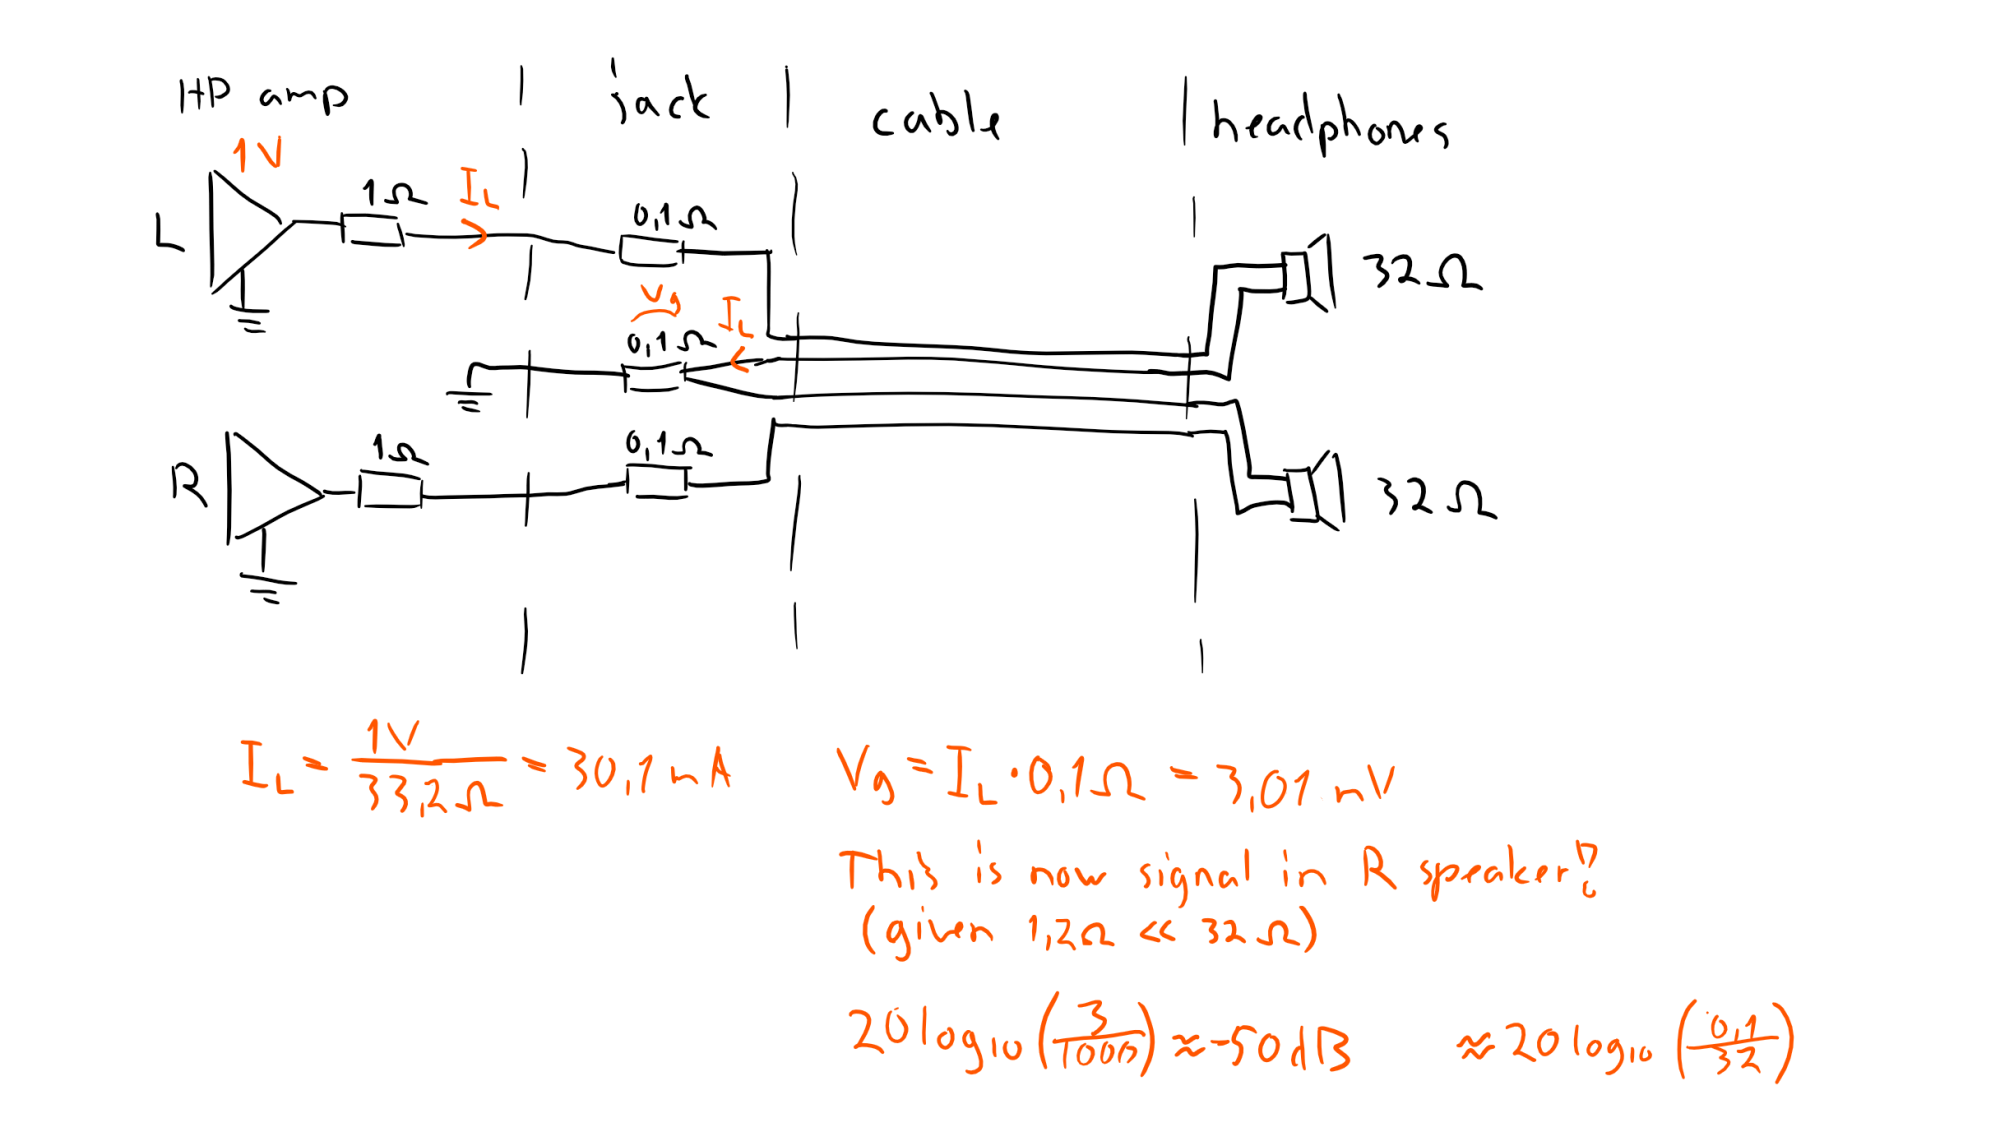 hight resolution of signal driven on left channel in unbalanced headphone example